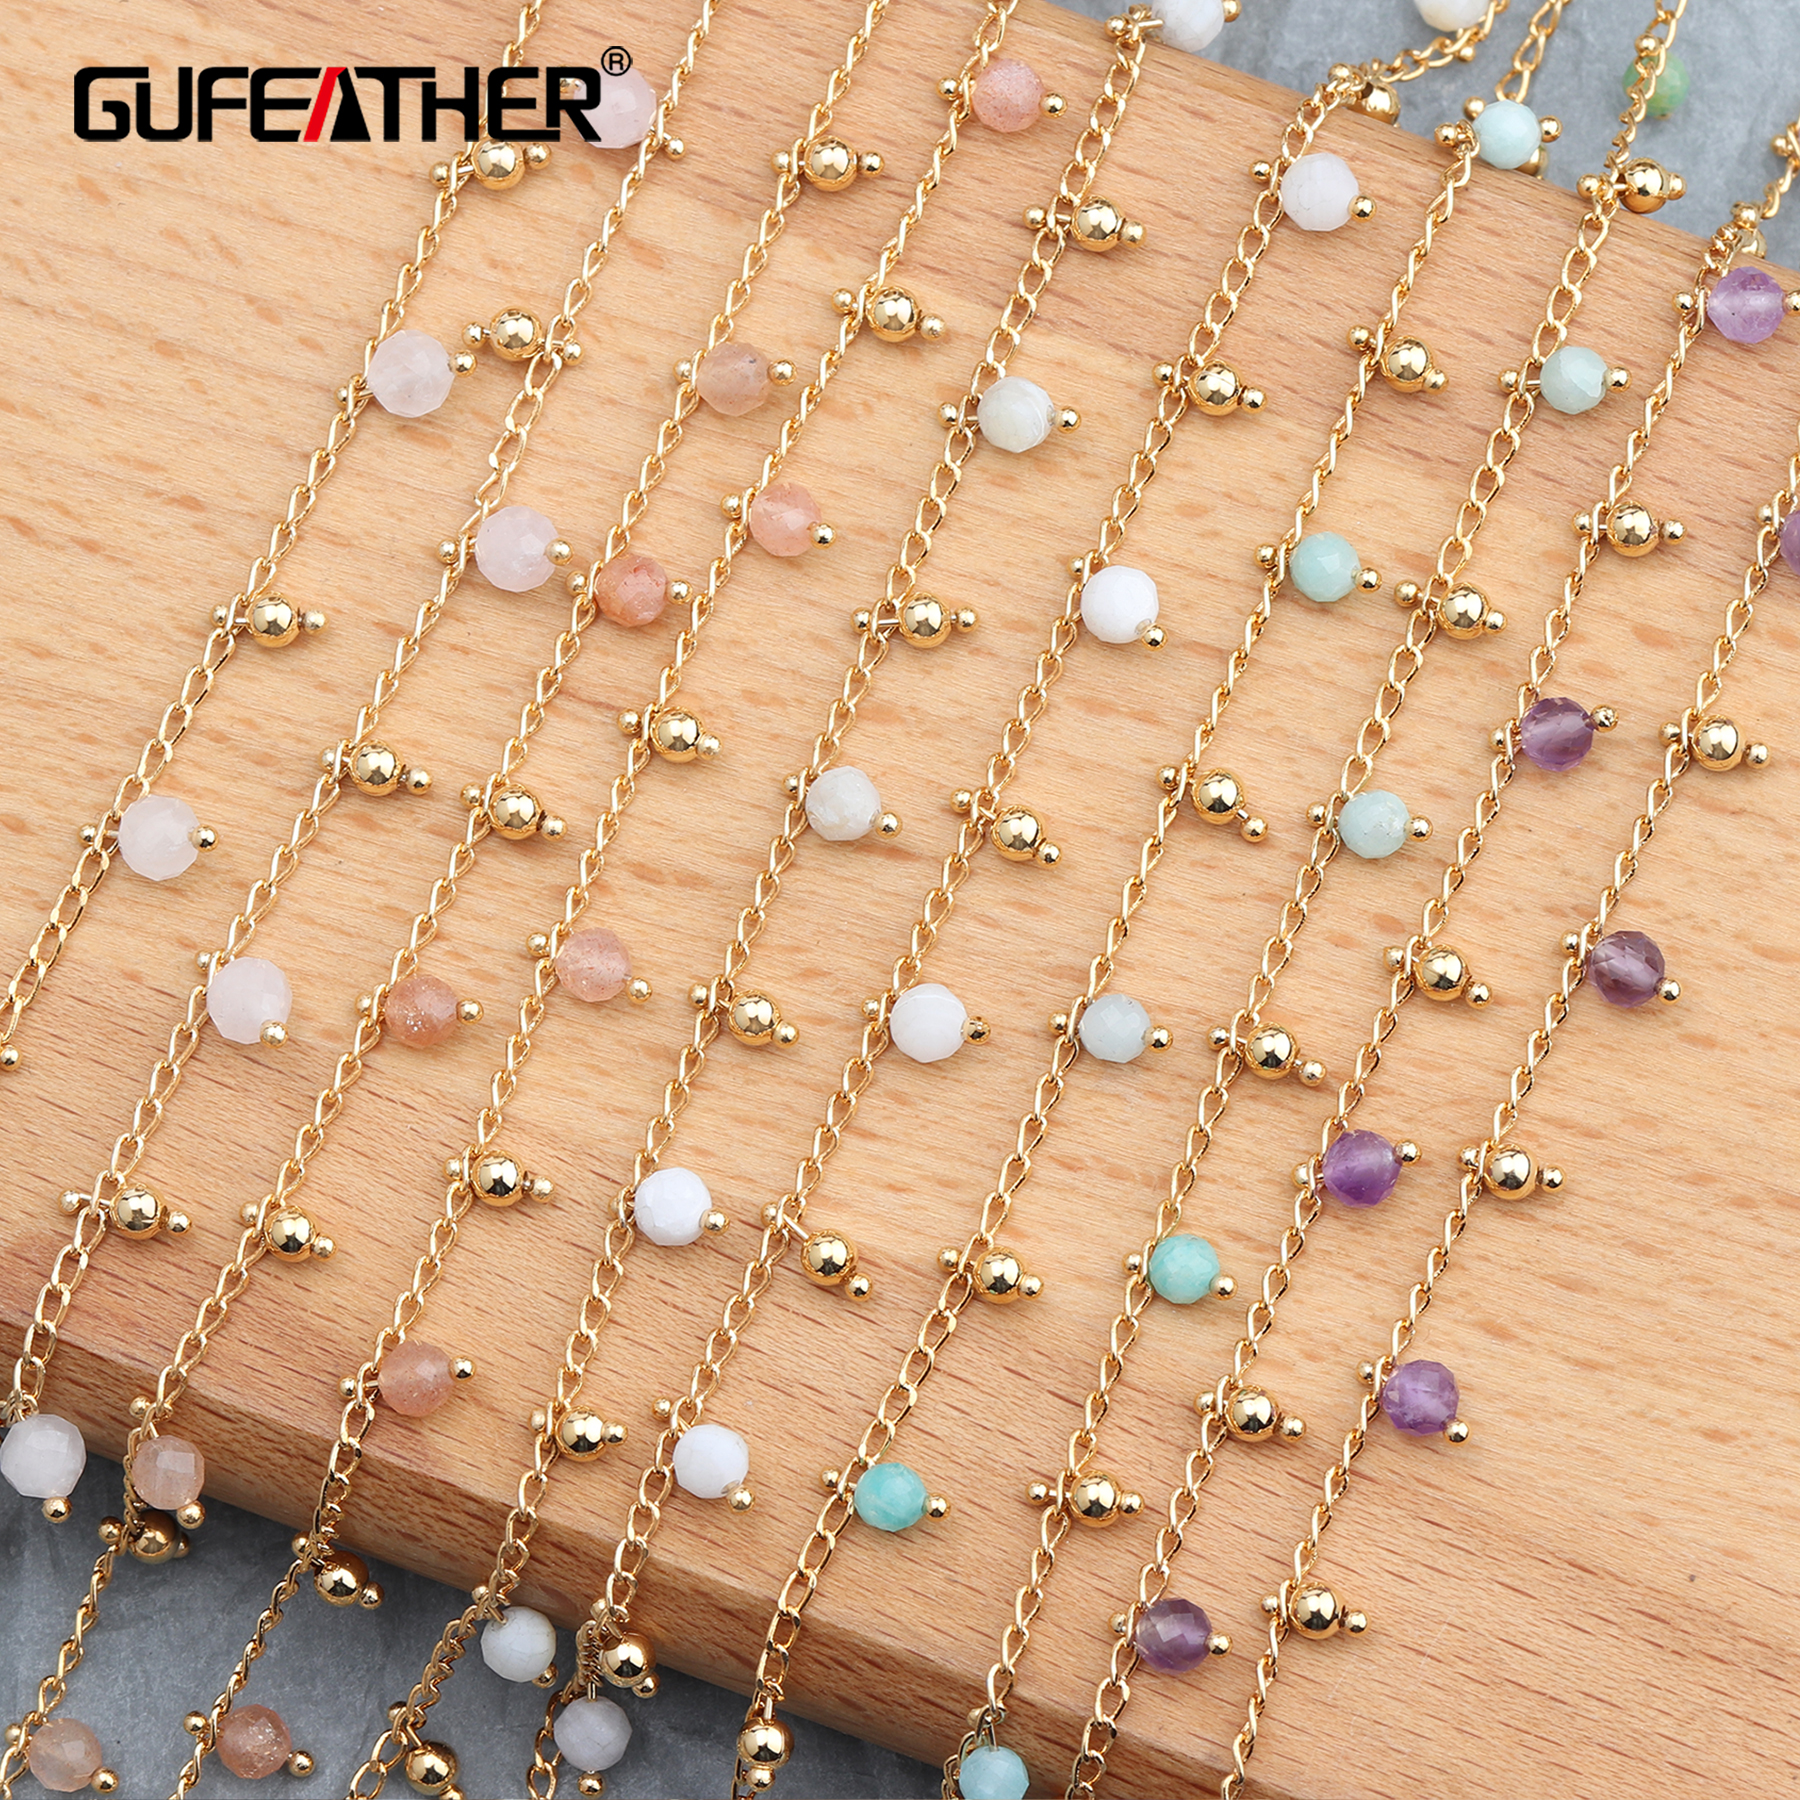 GUFEATHER C59,jewelry Accessories,jewelry Making,18k Gold Plated,diy Beads Chain,jewelry Findings,necklace For Women,1m/lot